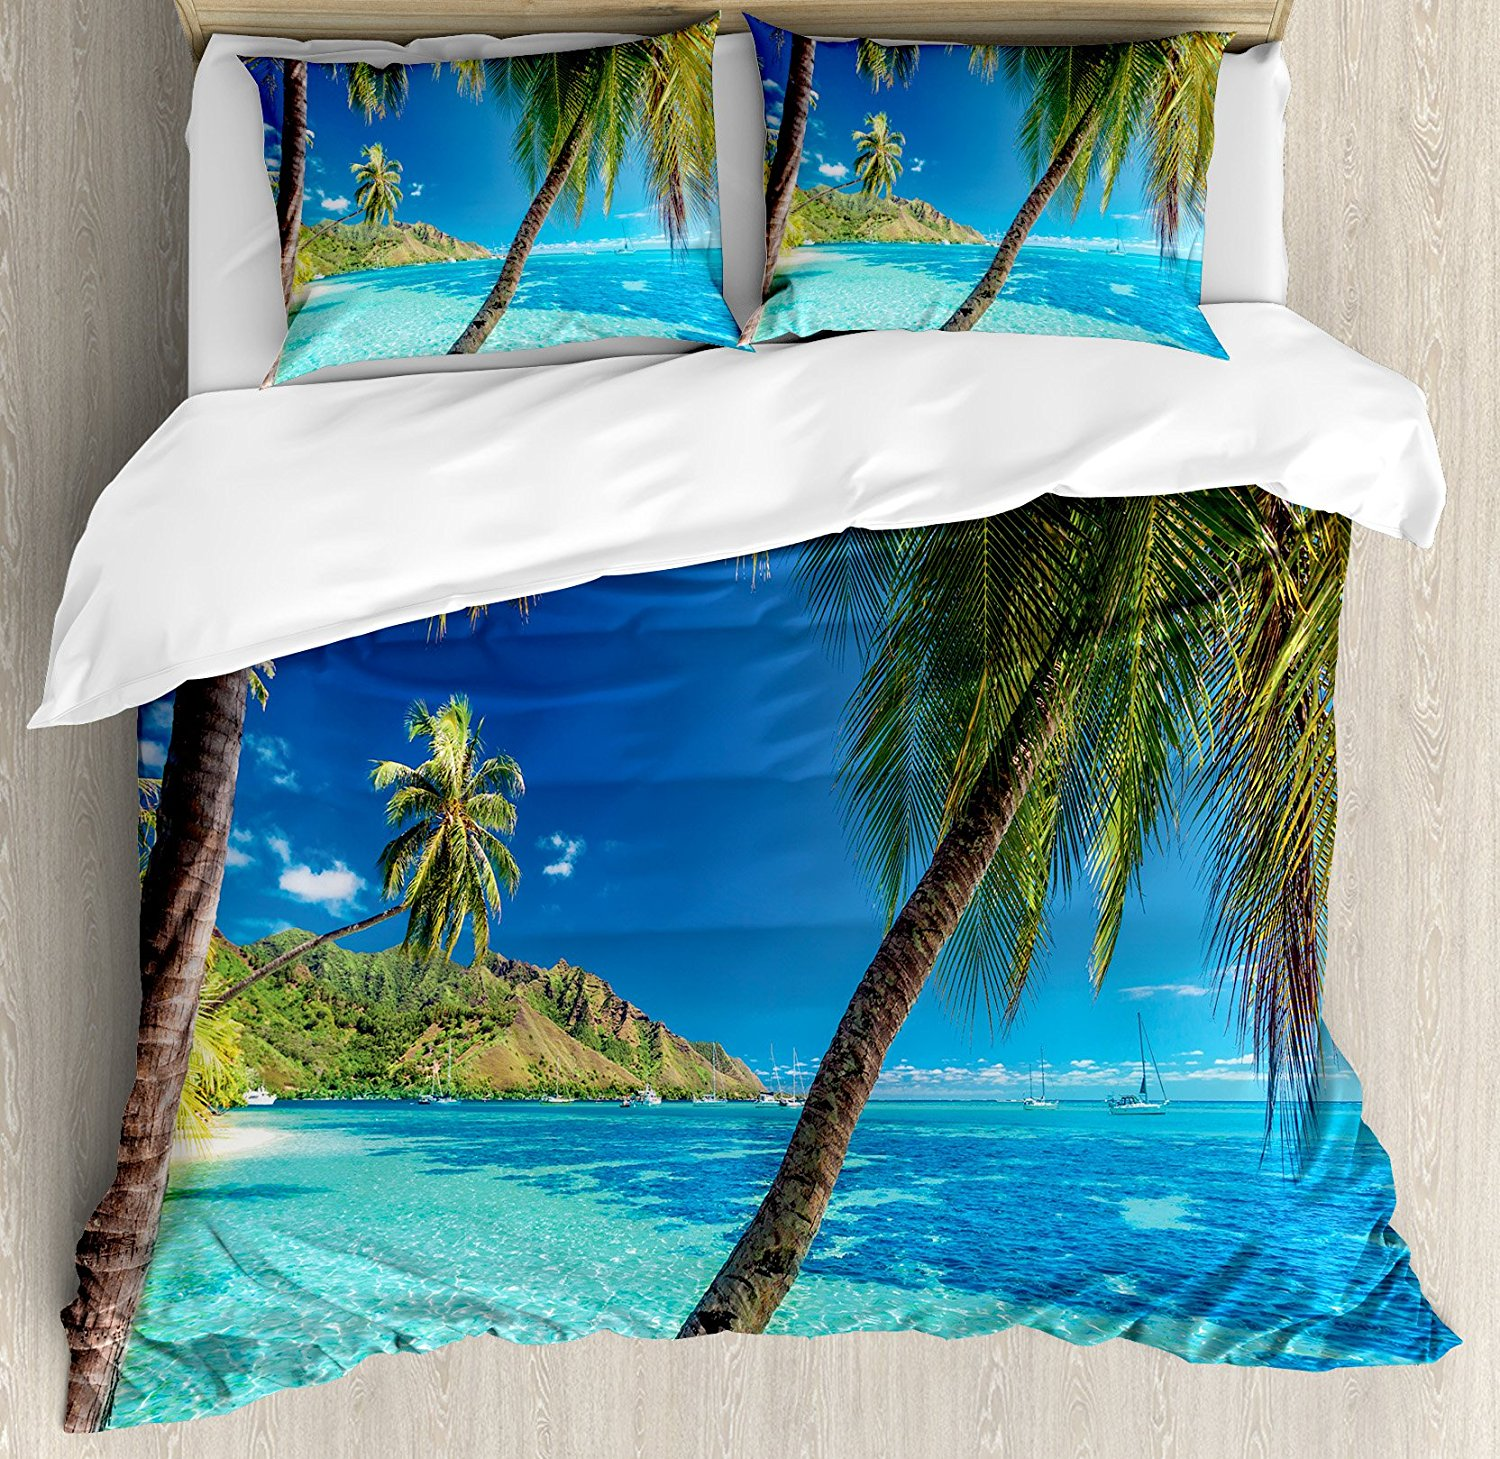 Ocean Image of a Tropical Island with the Palm Trees and Clear Sea Beach Theme Print Turquoise Blue